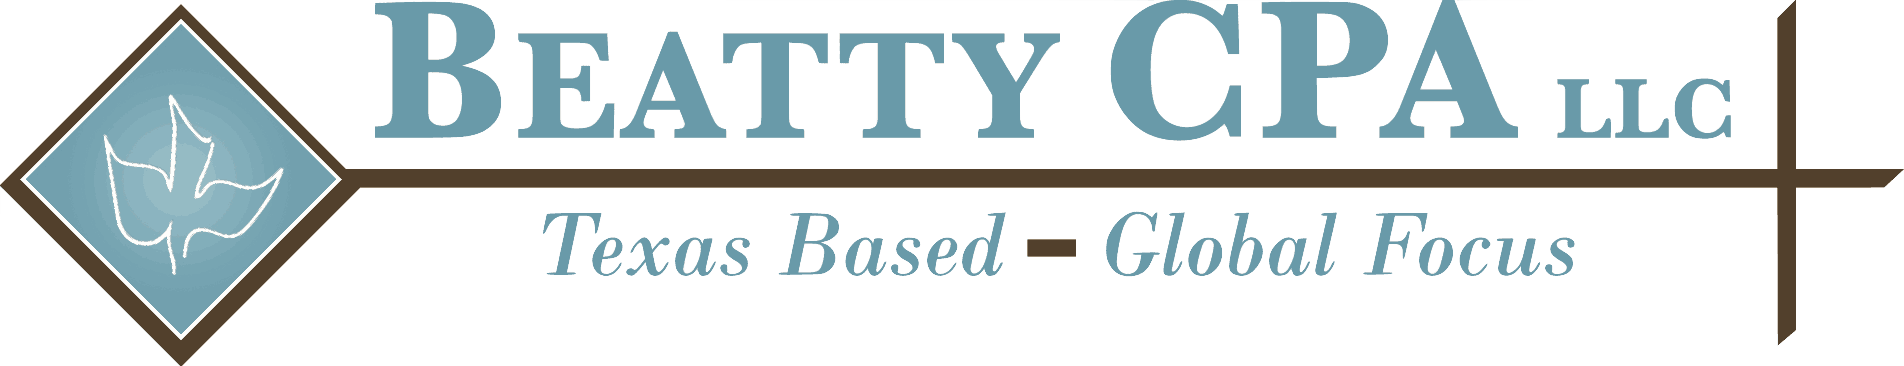 Beatty CPA, LLC